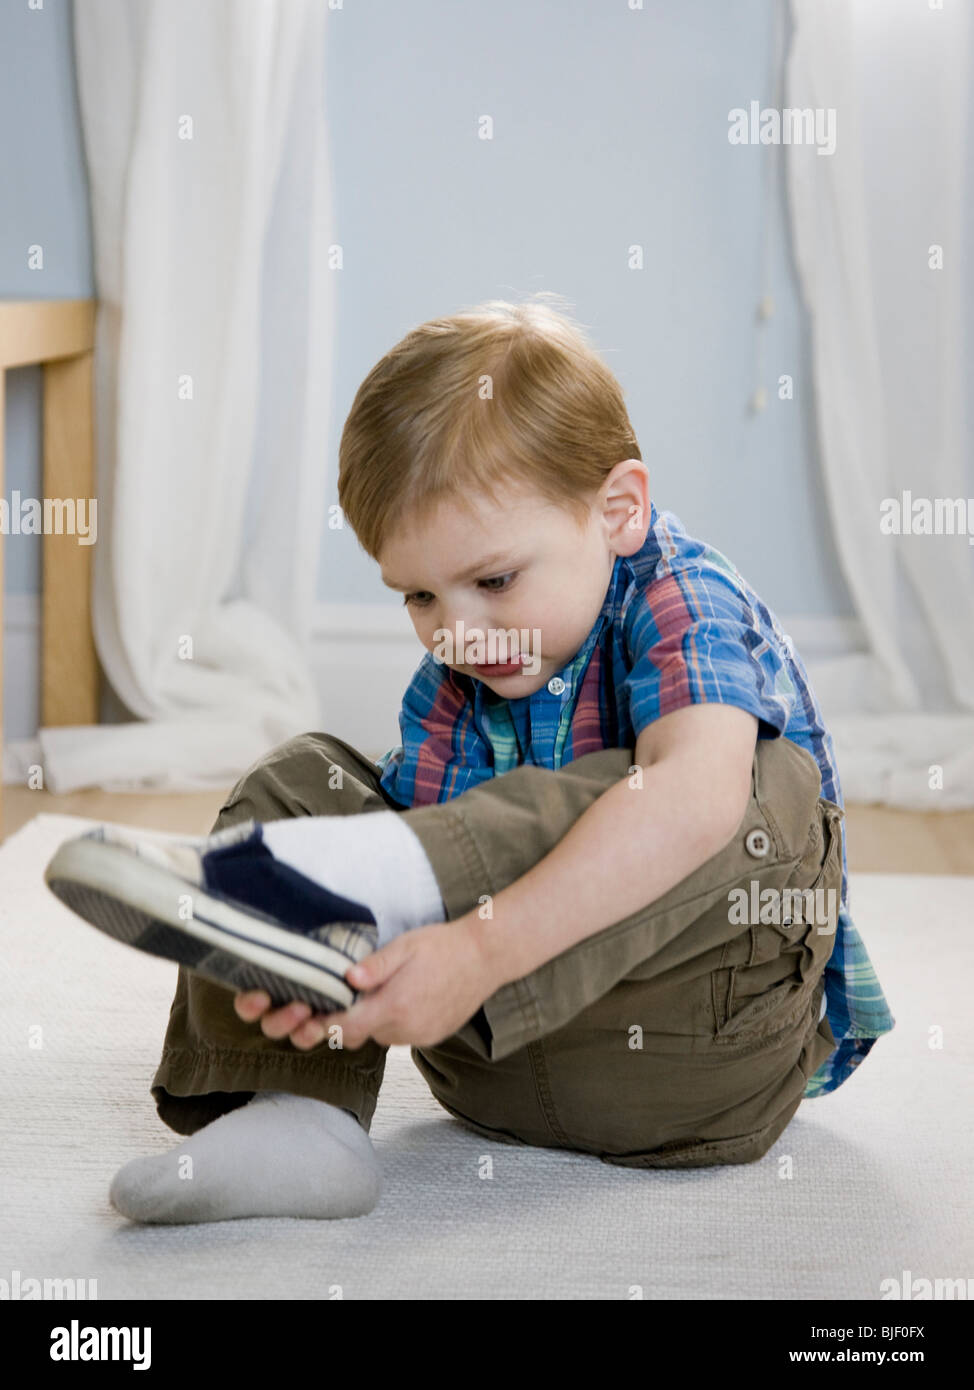 Little Boy Putting On Shoes Stock Photo: 28603902